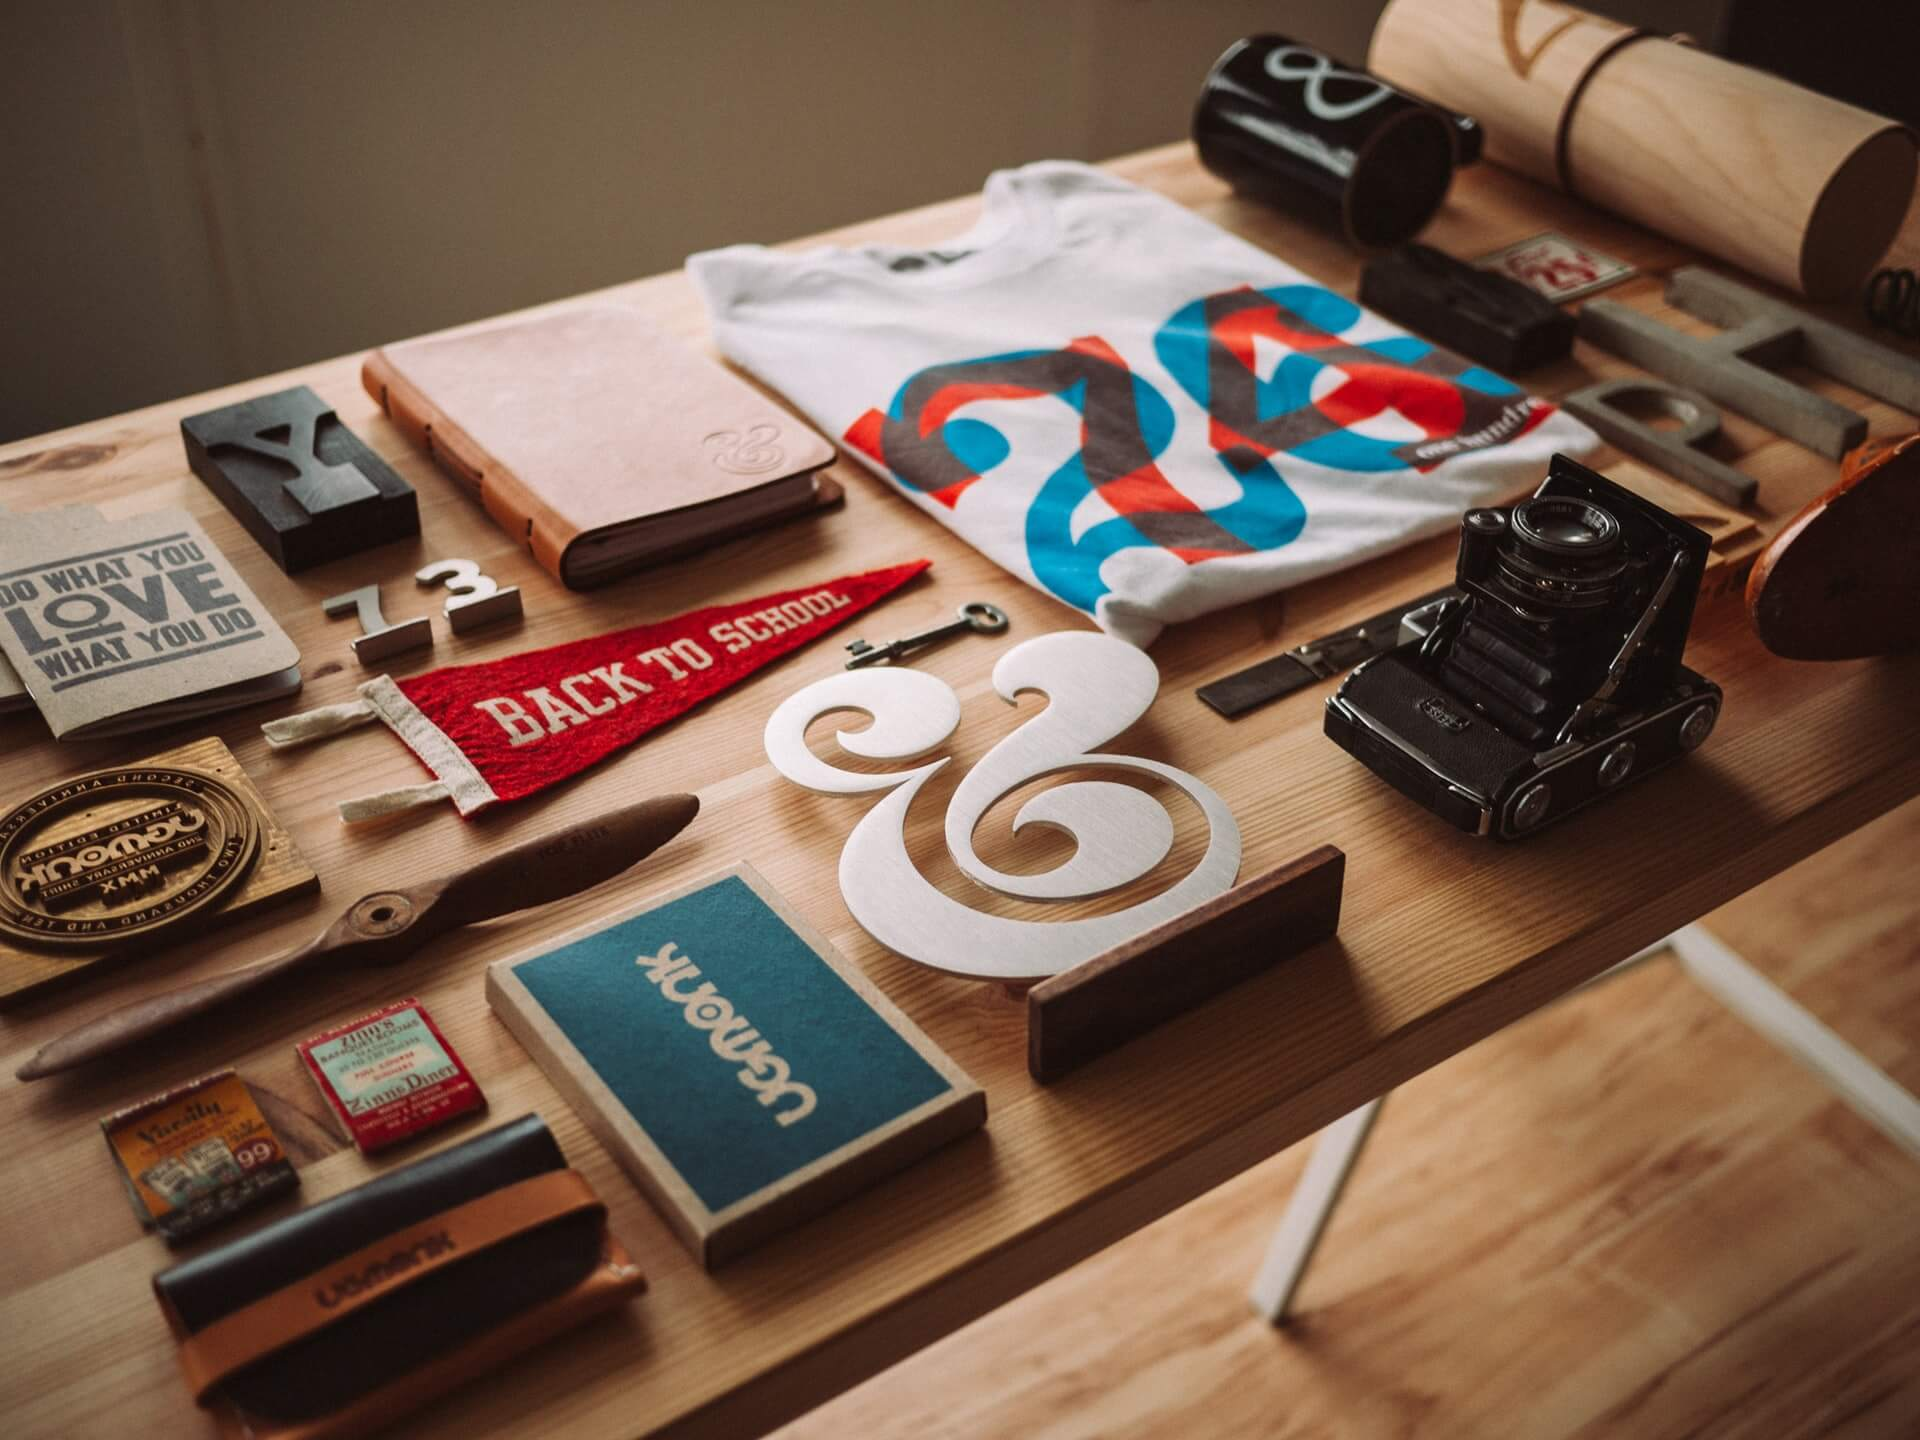 Table with branding elements like logos, t-shirt, and stamps